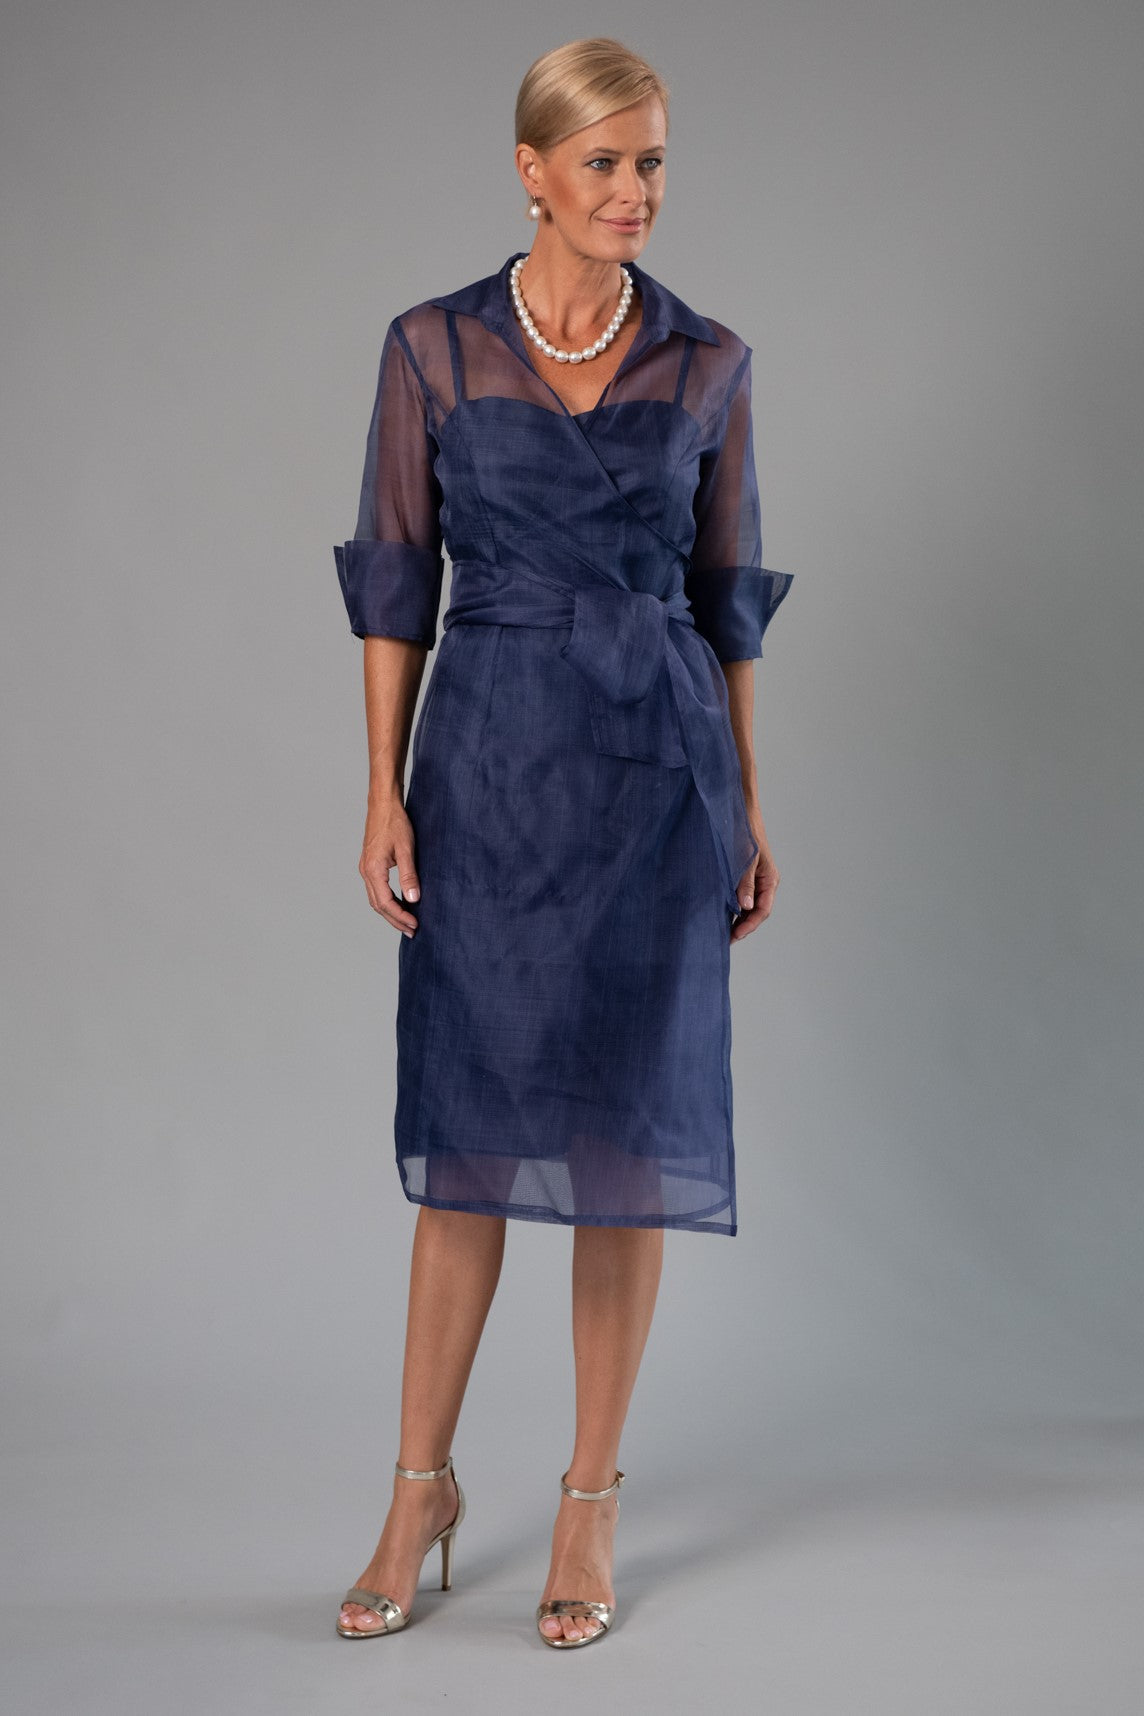 Cocktail Organza Wrap Dress - Navy for the Mother of the Bride / Groom